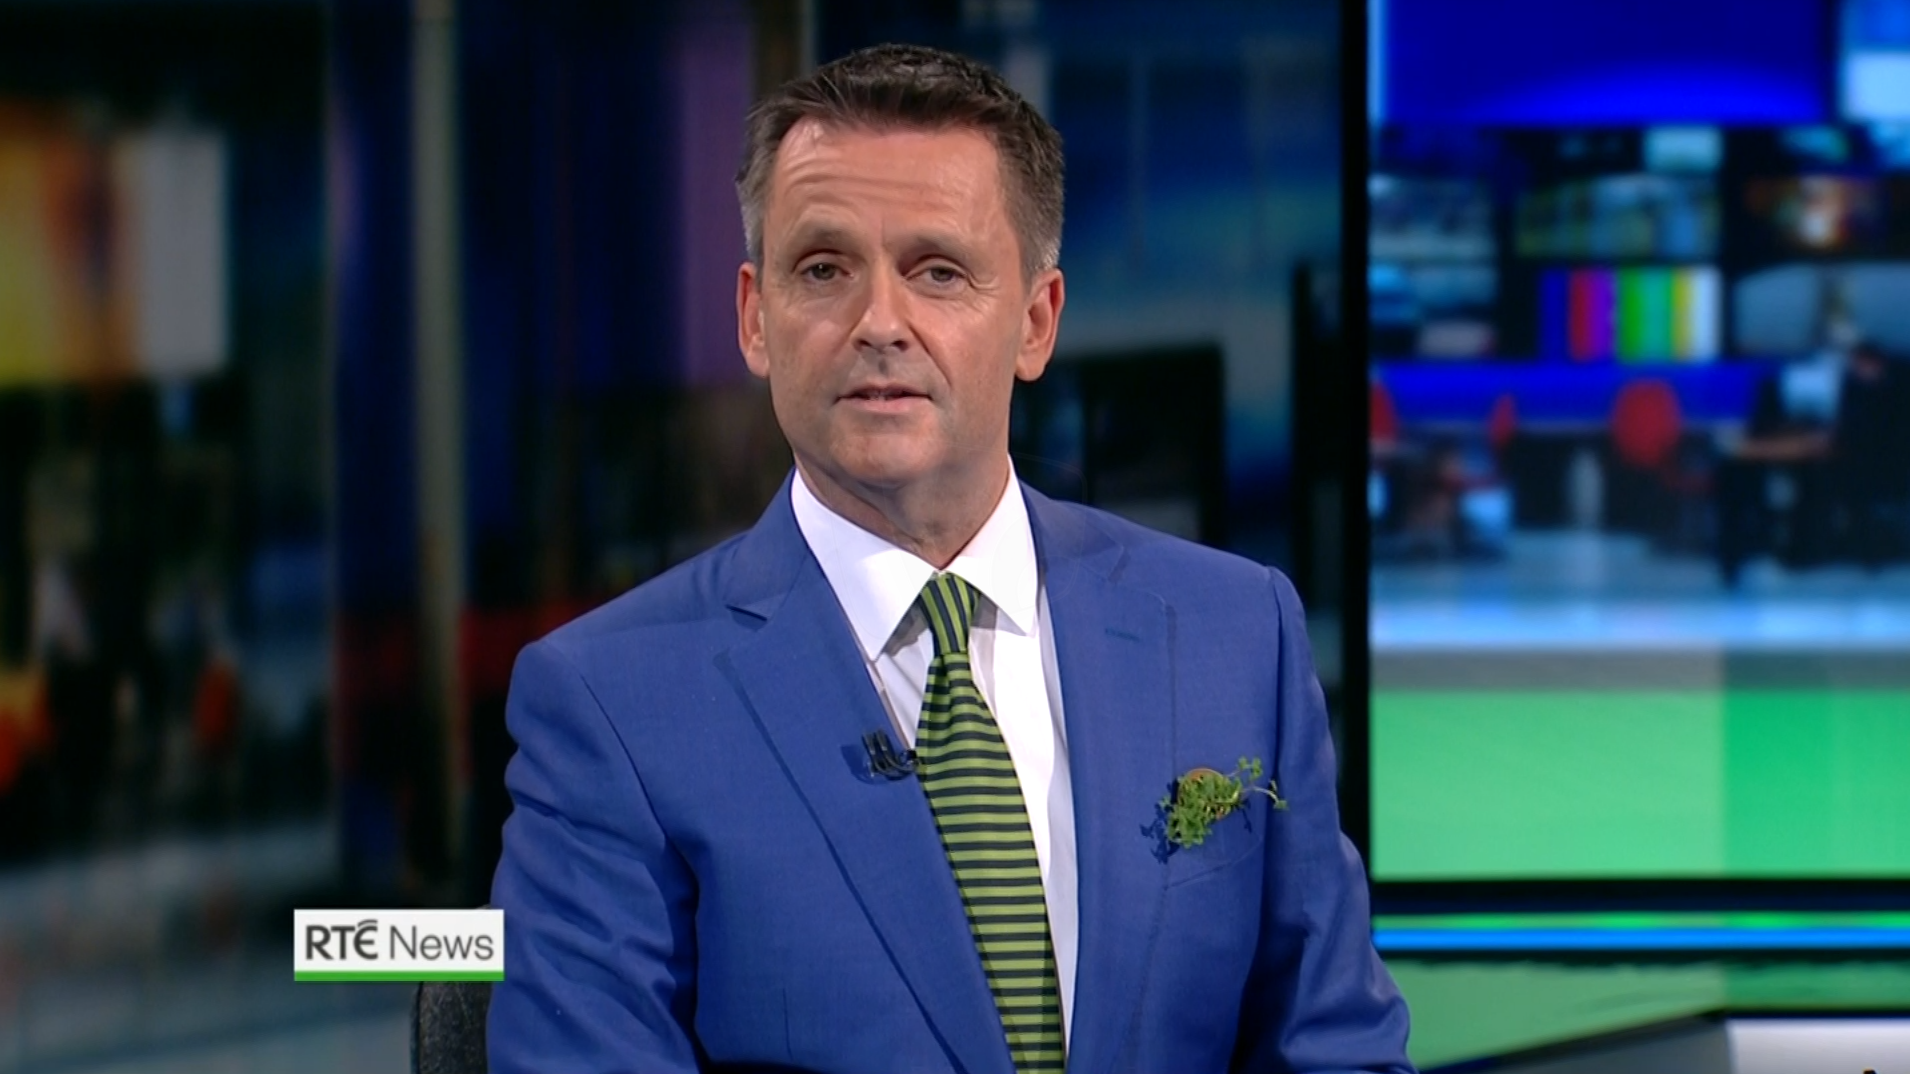 PICTURED: RTÉ News: Six-One presentation for St Patrick's Day. Presenter: Aengus MacGrianna.